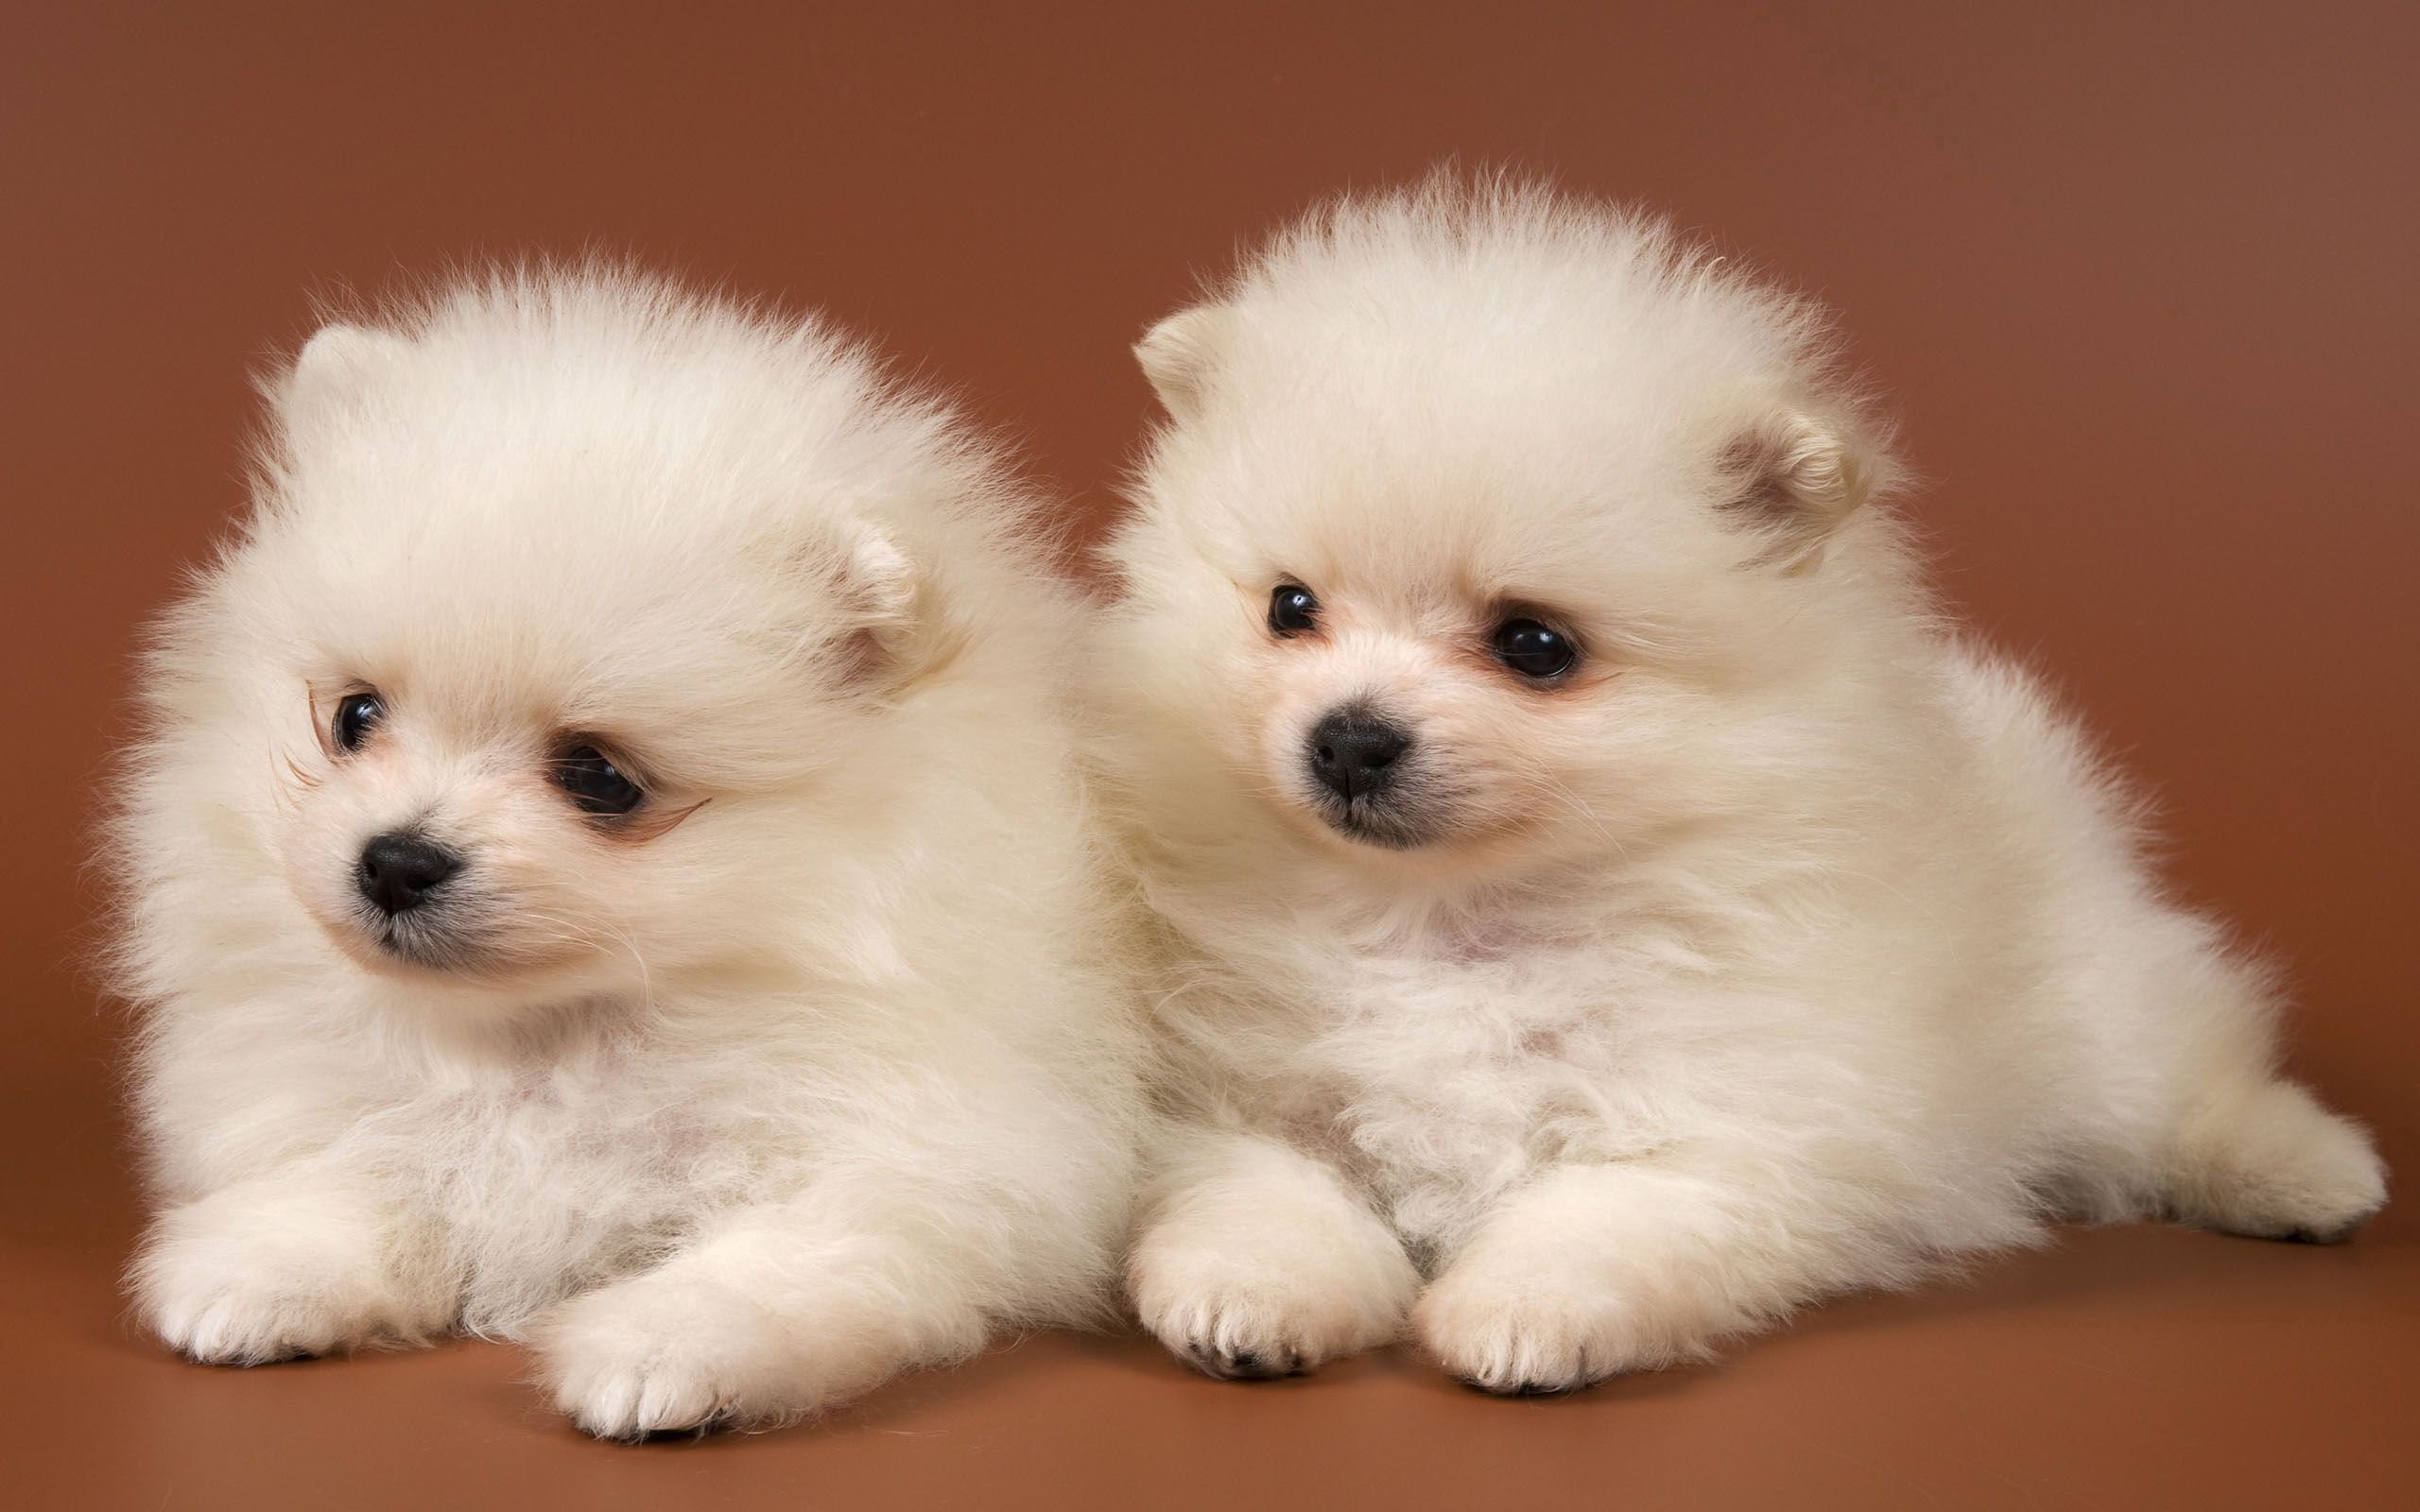 109418 download wallpaper Animals, Puppies, Couple, Pair, Toddlers, Kids screensavers and pictures for free